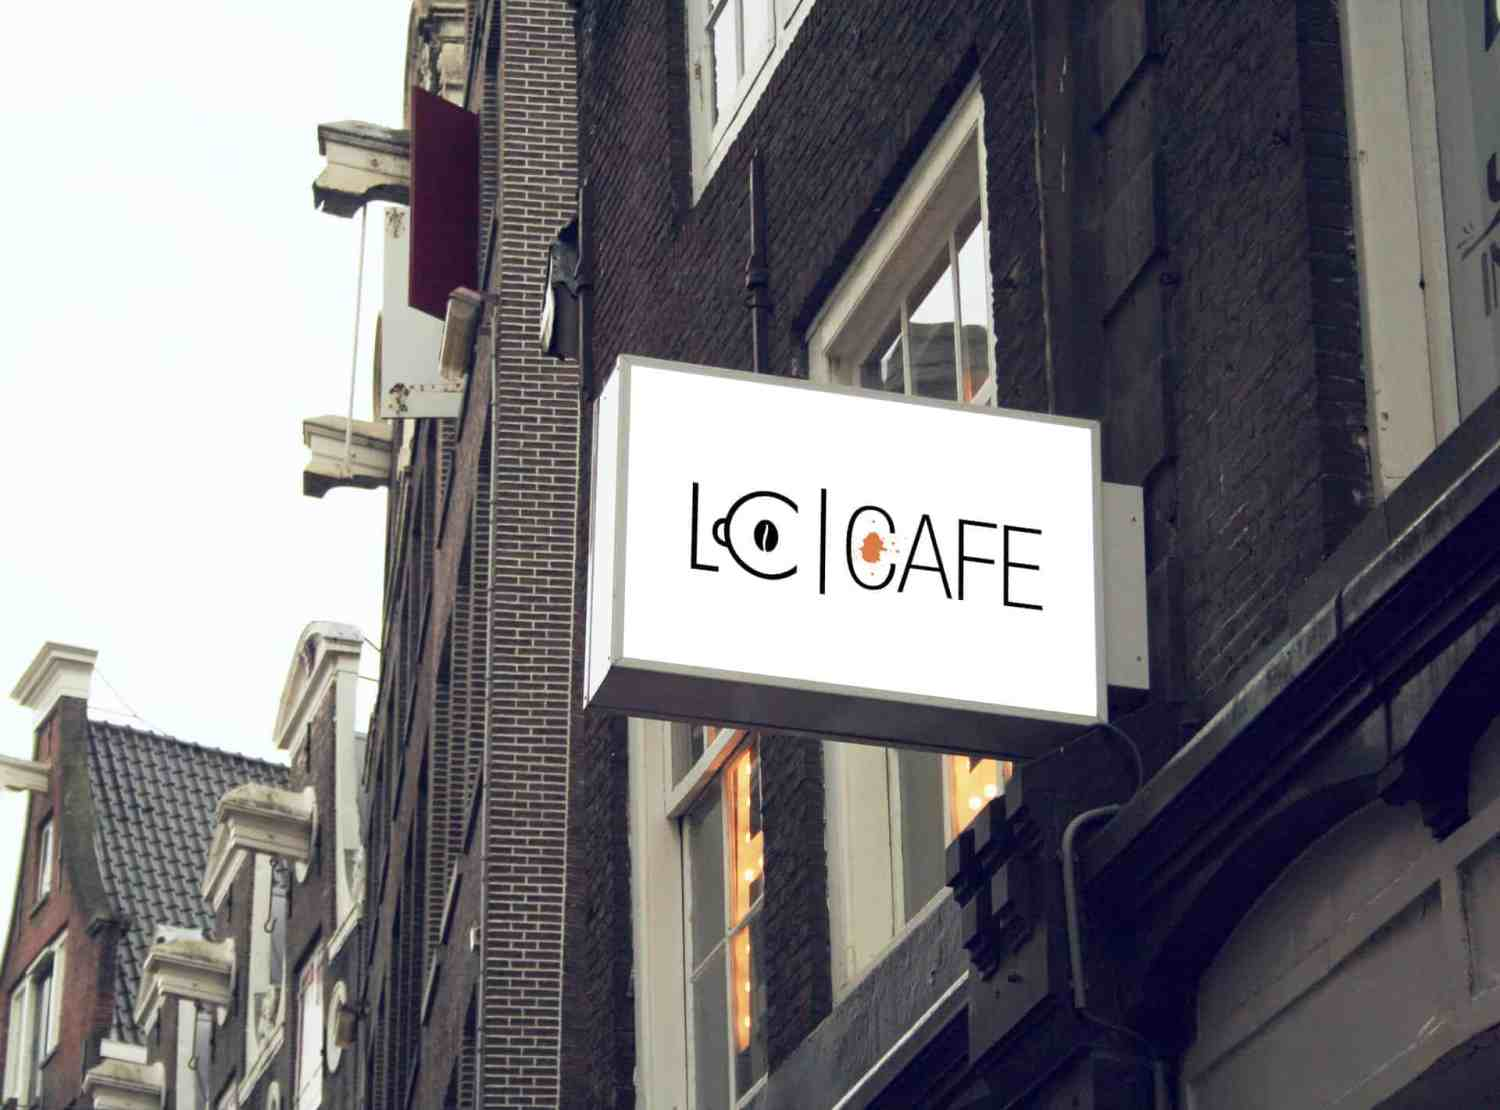 LC Cafe